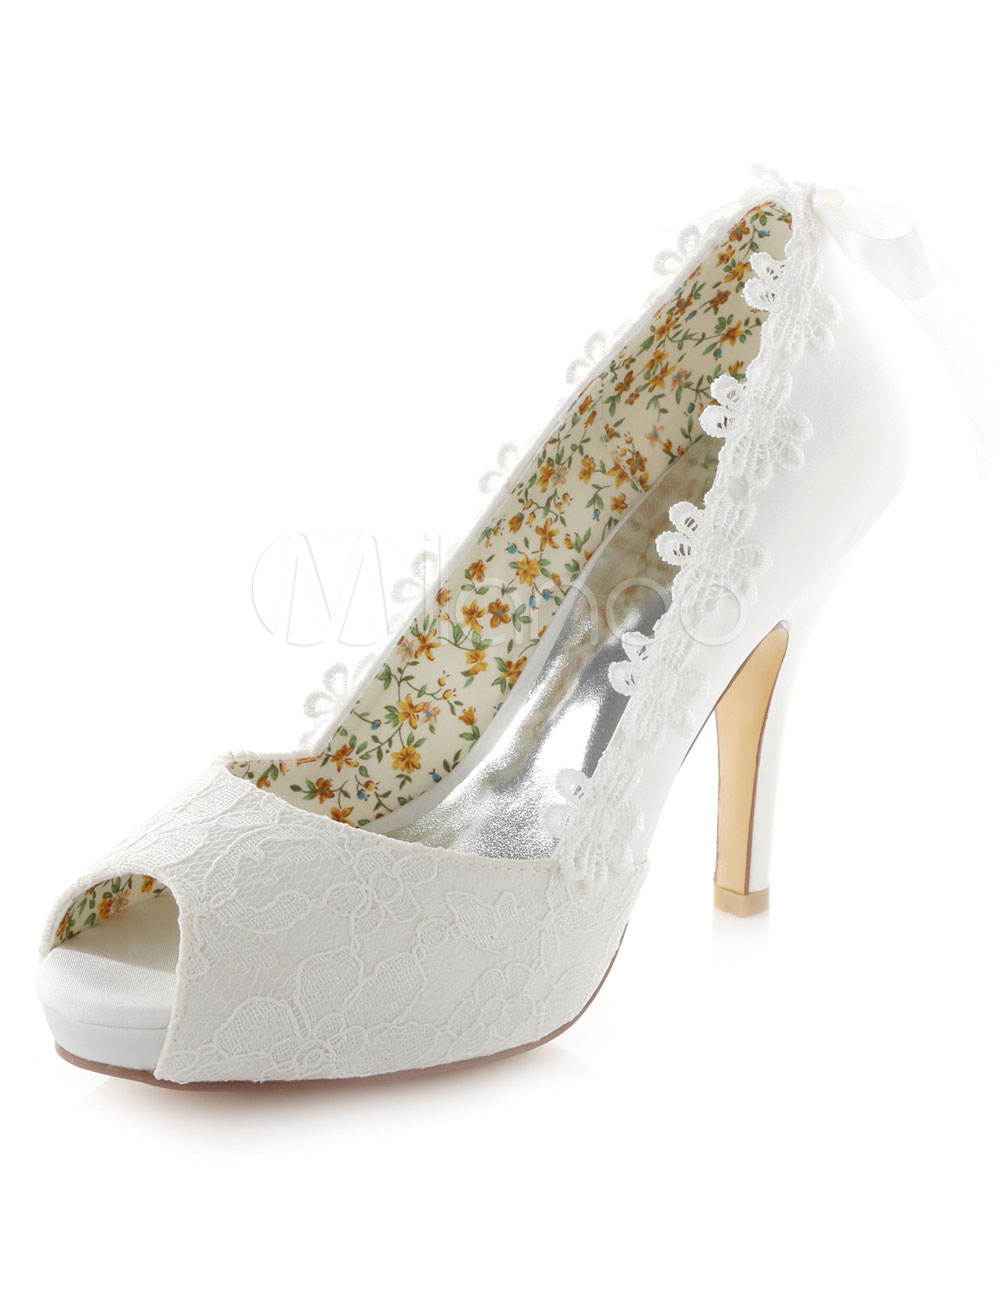 Buy White Lace Flowers Peep Toe Platform Satin Bridal Pumps for $62.99 in Milanoo store